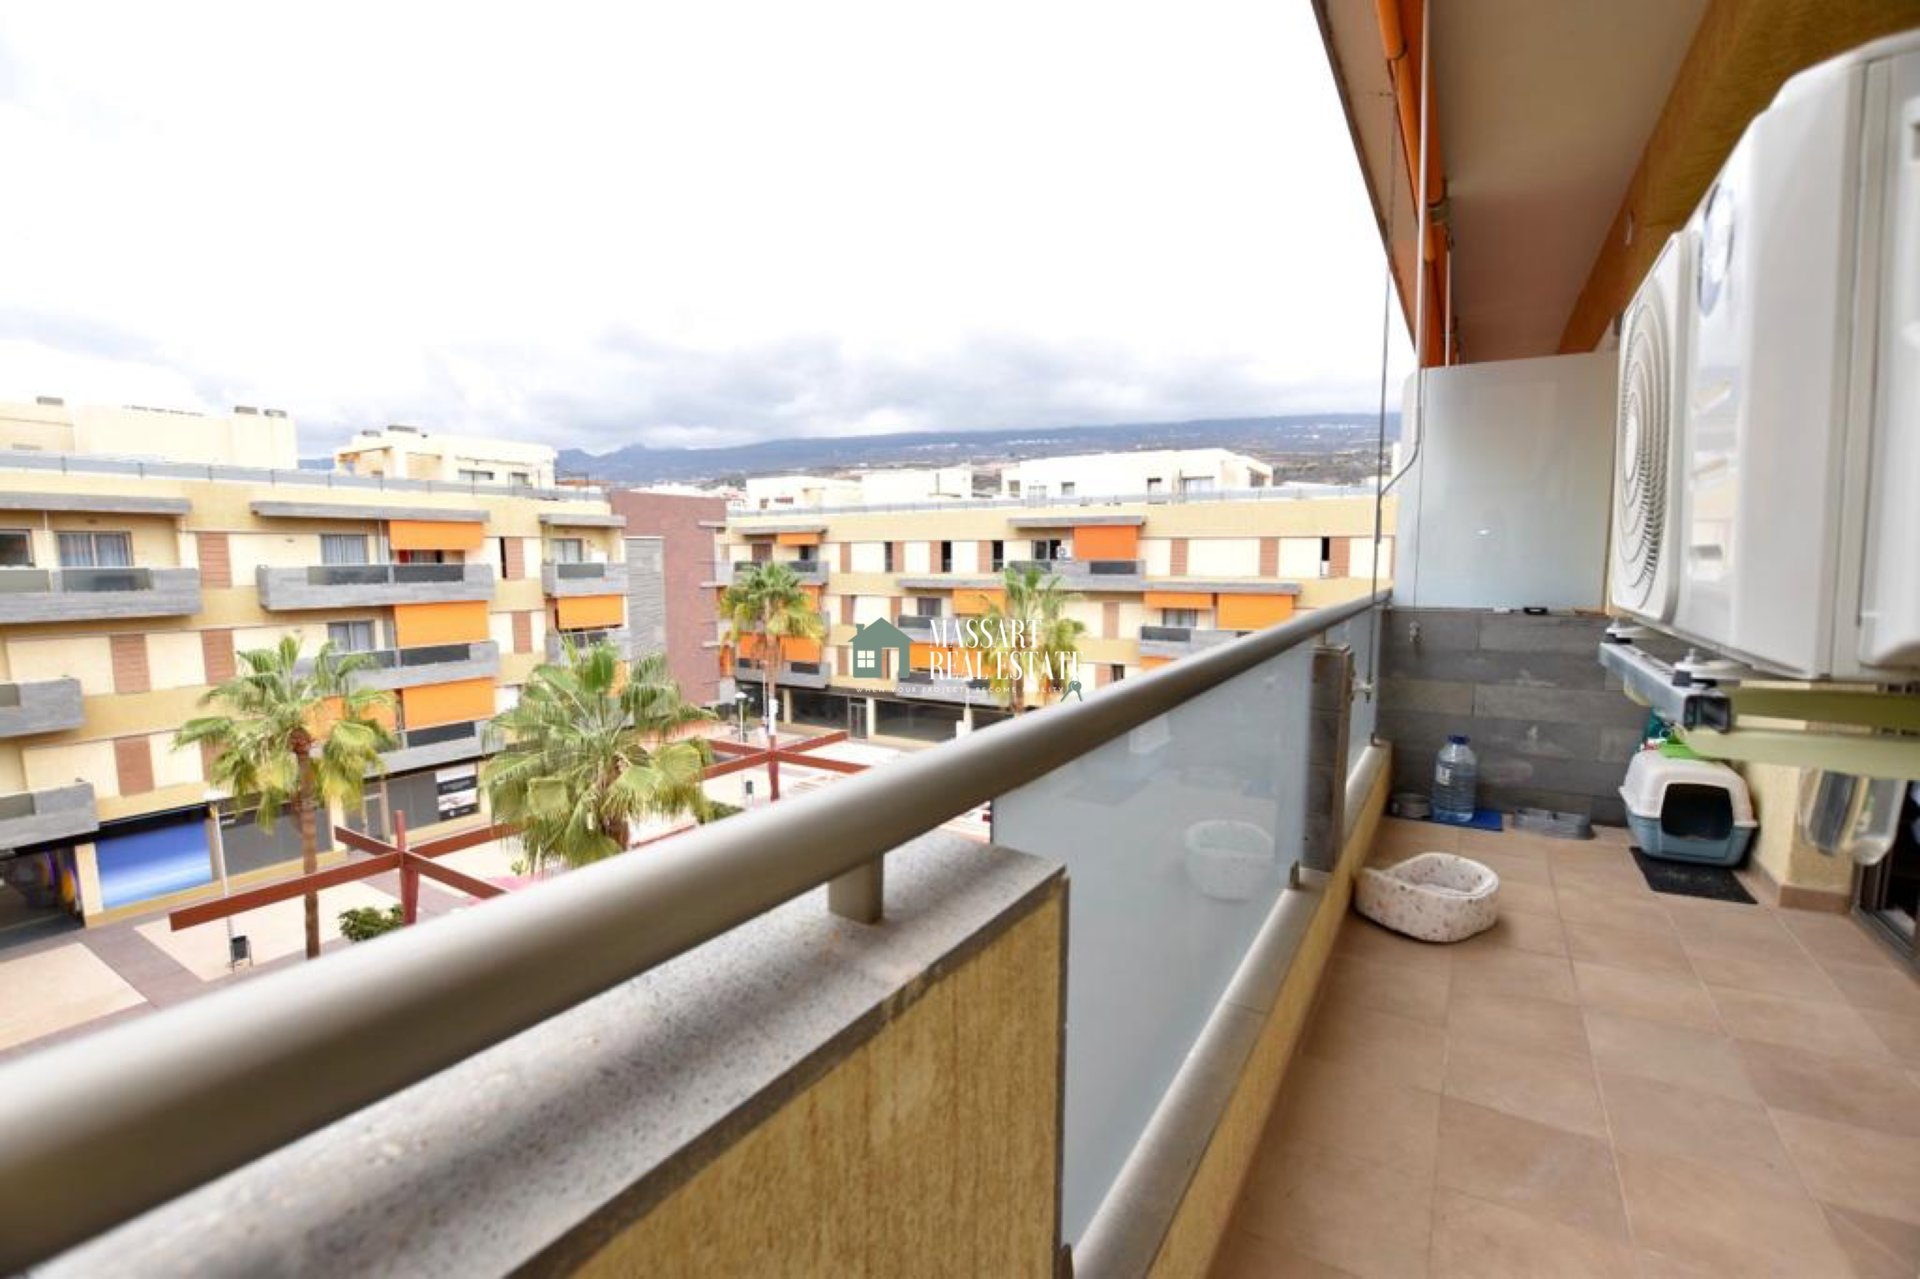 FOR SALE in the beautiful coastal town of Alcalá, duplex penthouse with great value for its magnificent terrace.